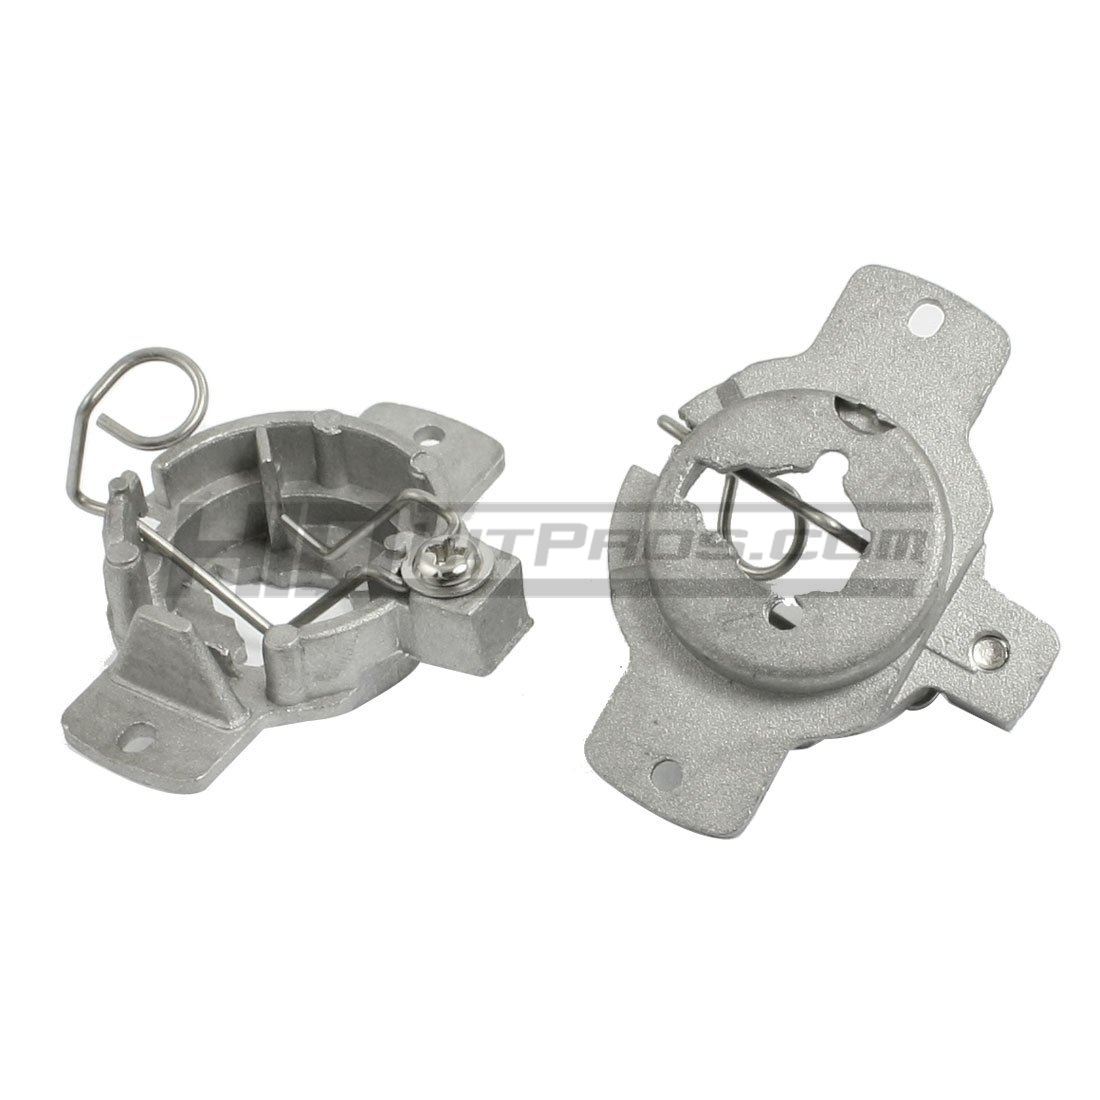 2PCS For Mercedes Benz HID Xenon Kit H1 Bulb Holders Adapters A PAIR